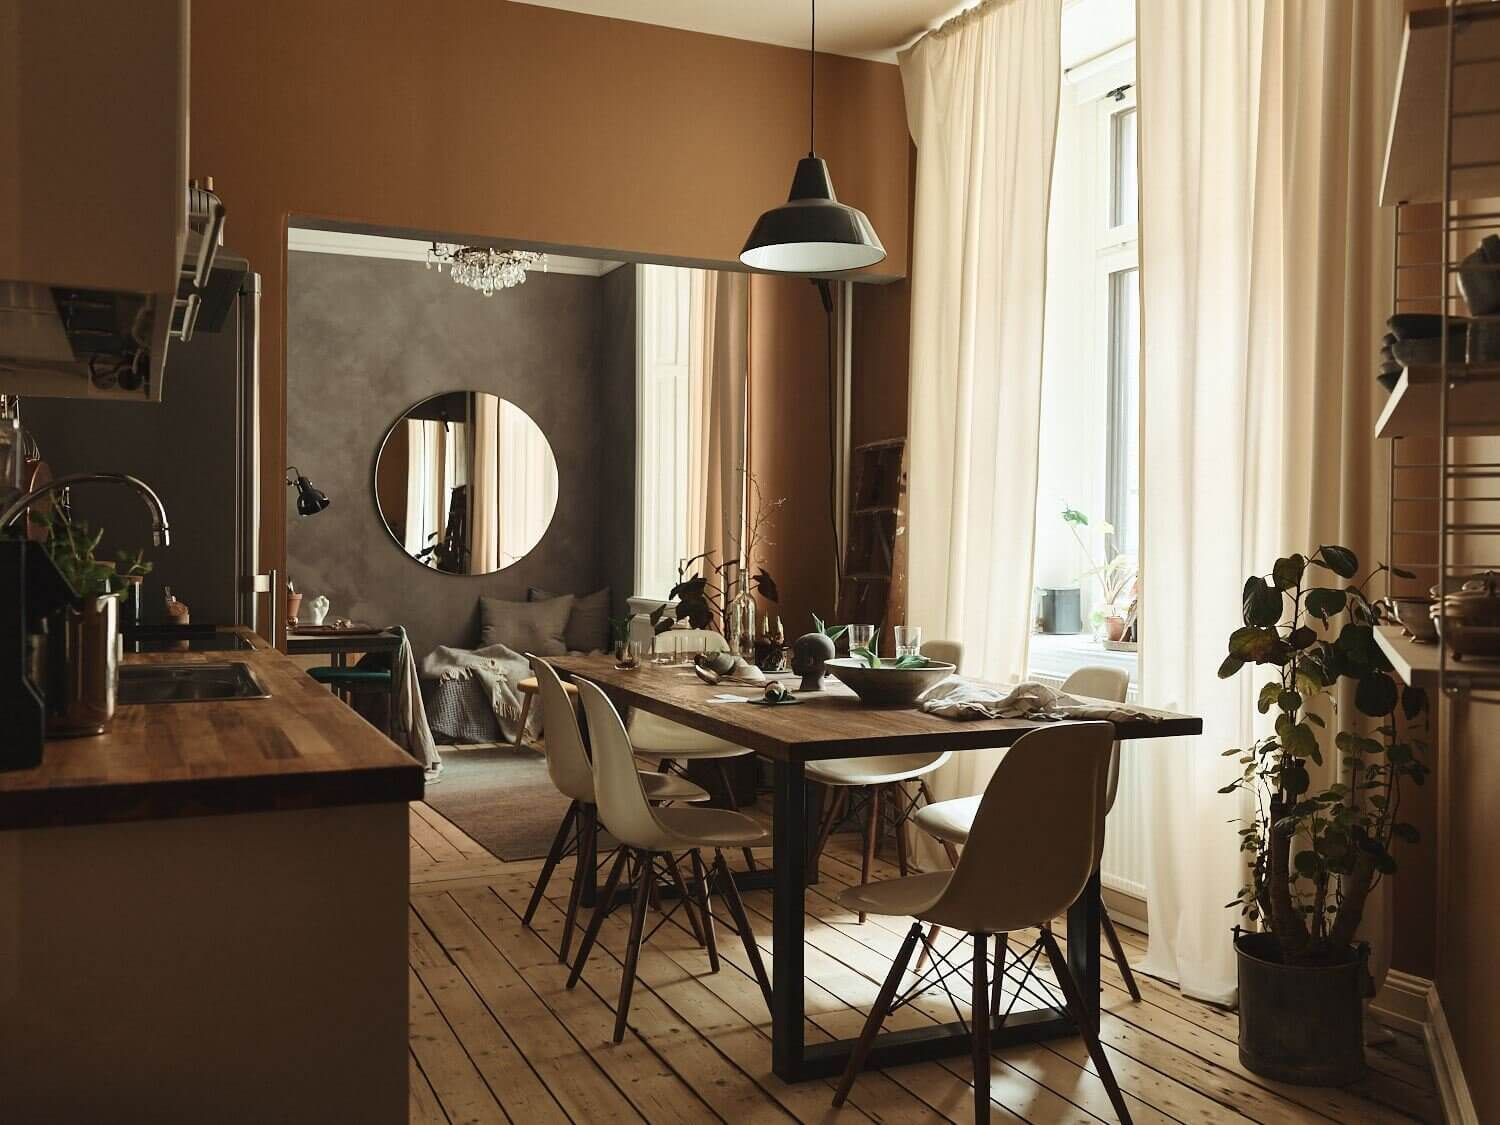 A Small Apartment Decorated in Warm Earth Tones